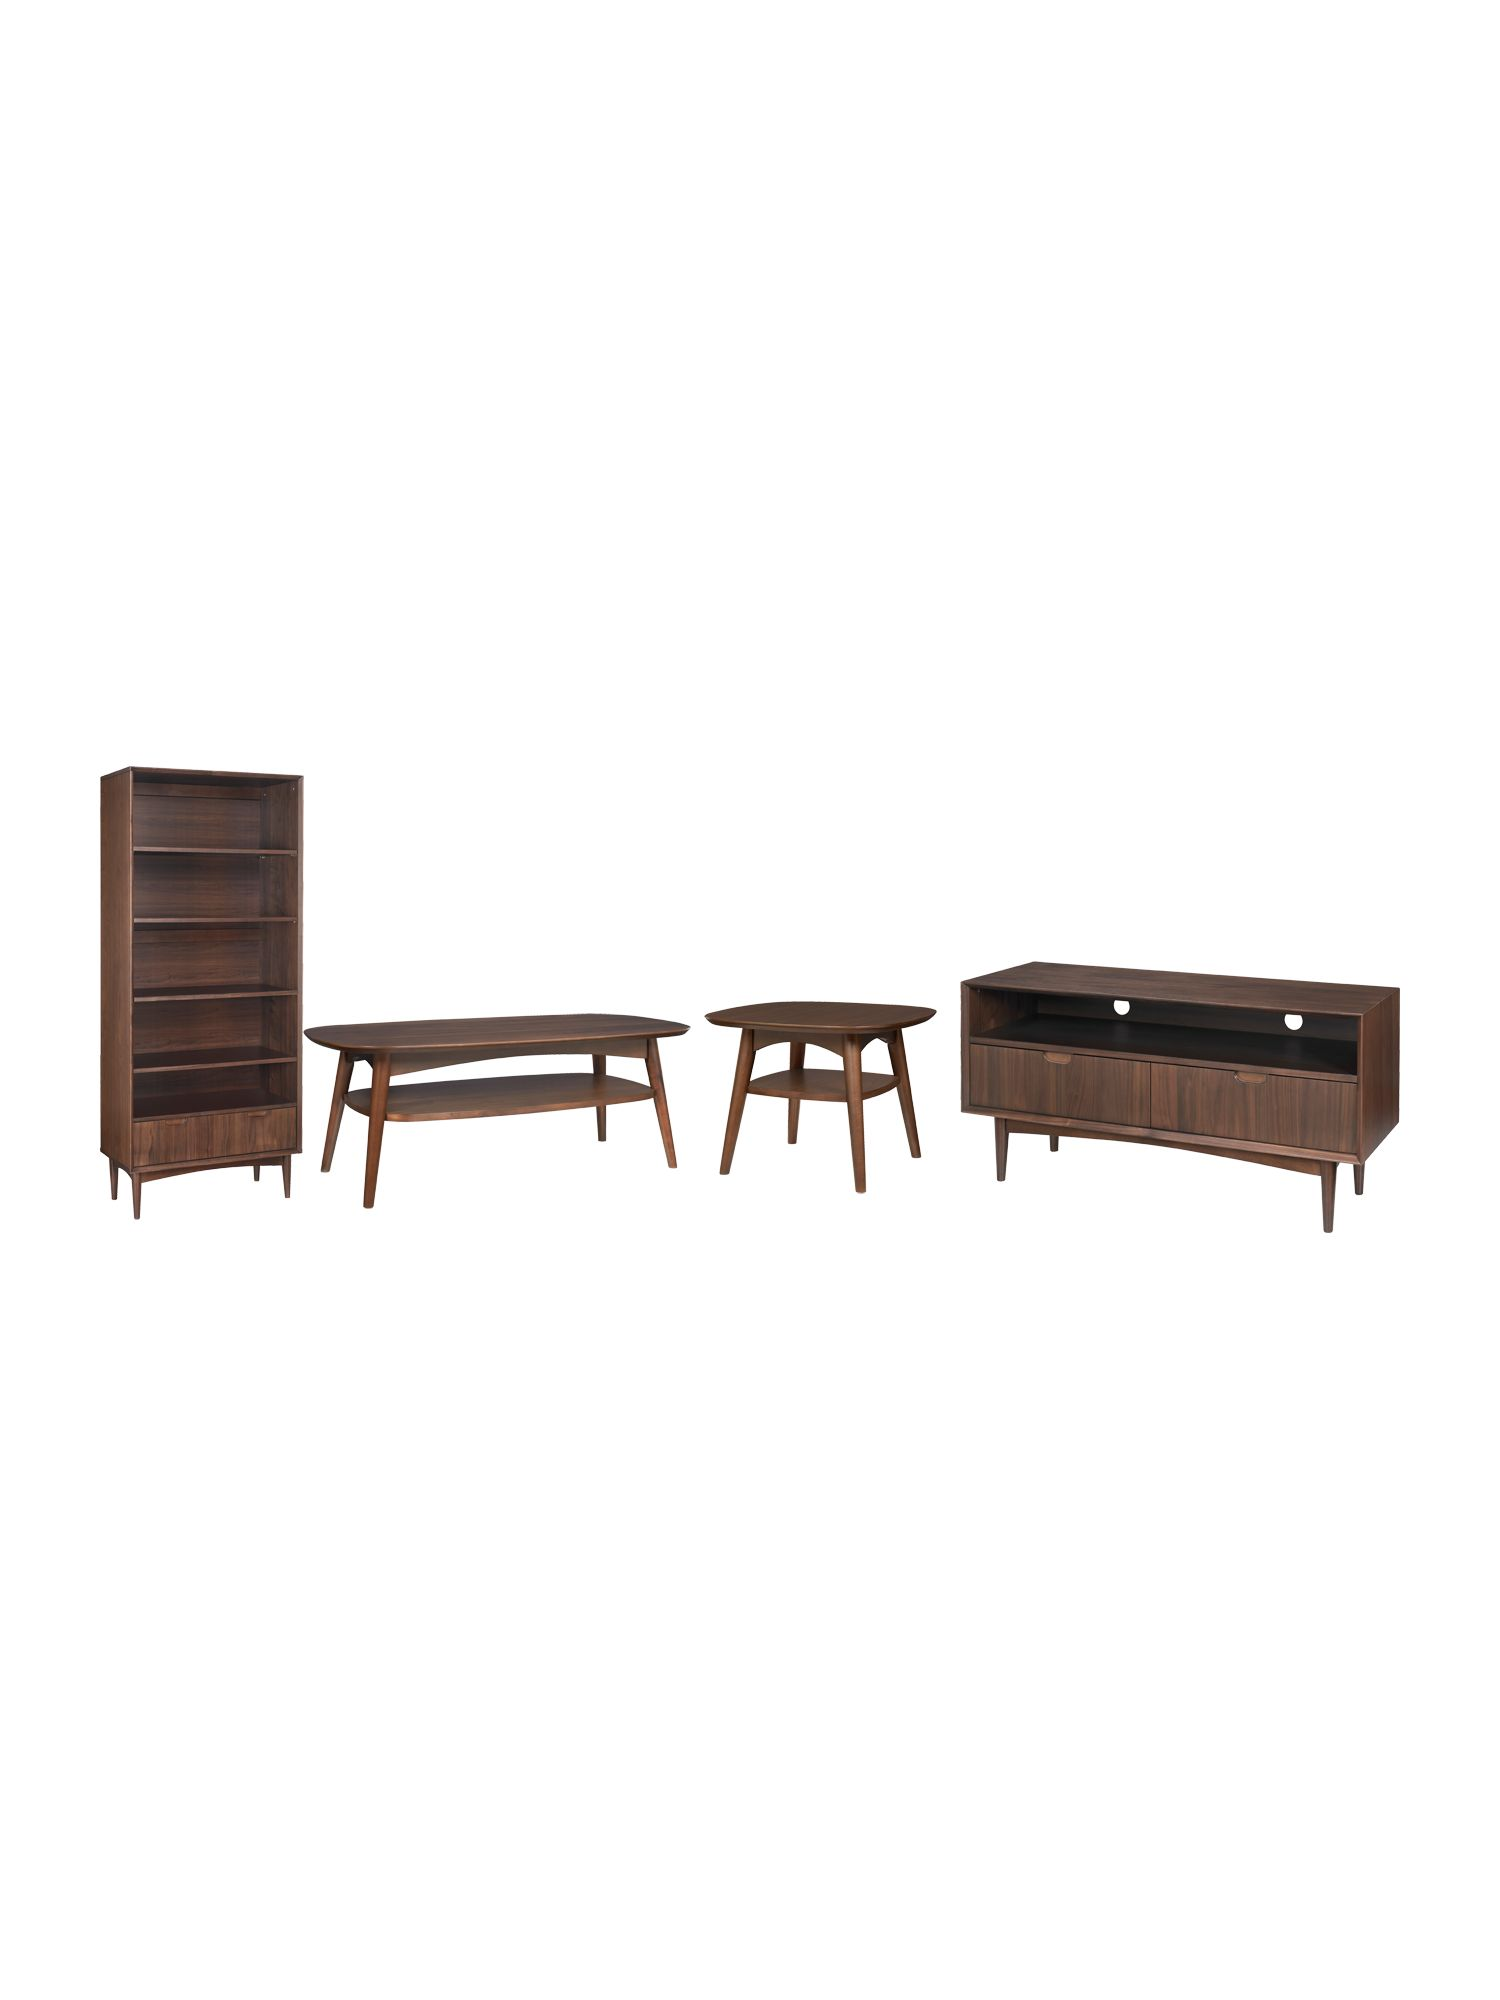 Dean living room range